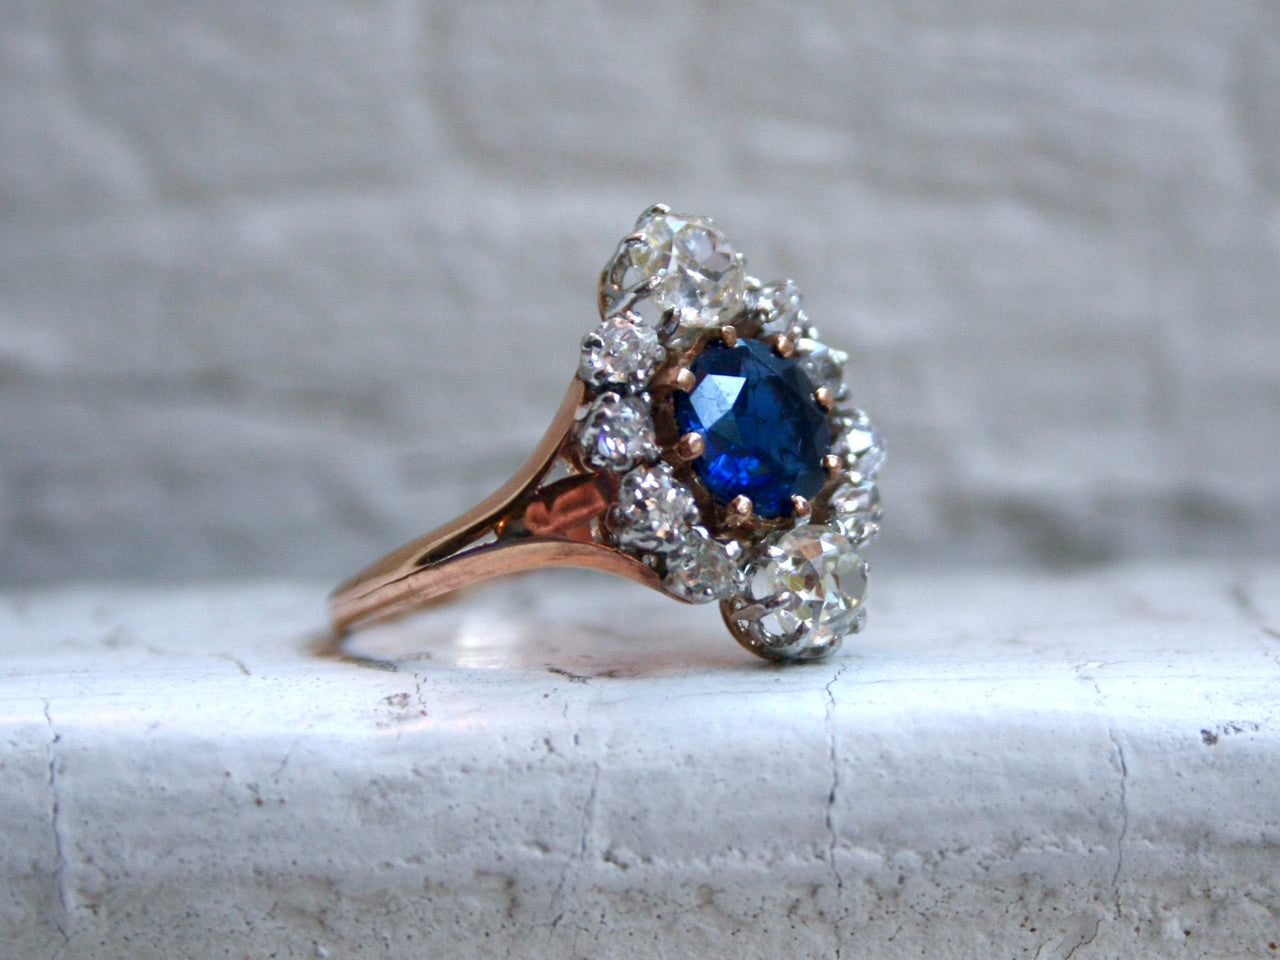 Beautiful Antique 14K Rose Gold Diamond and Sapphire Halo Ring - 3.15ct.